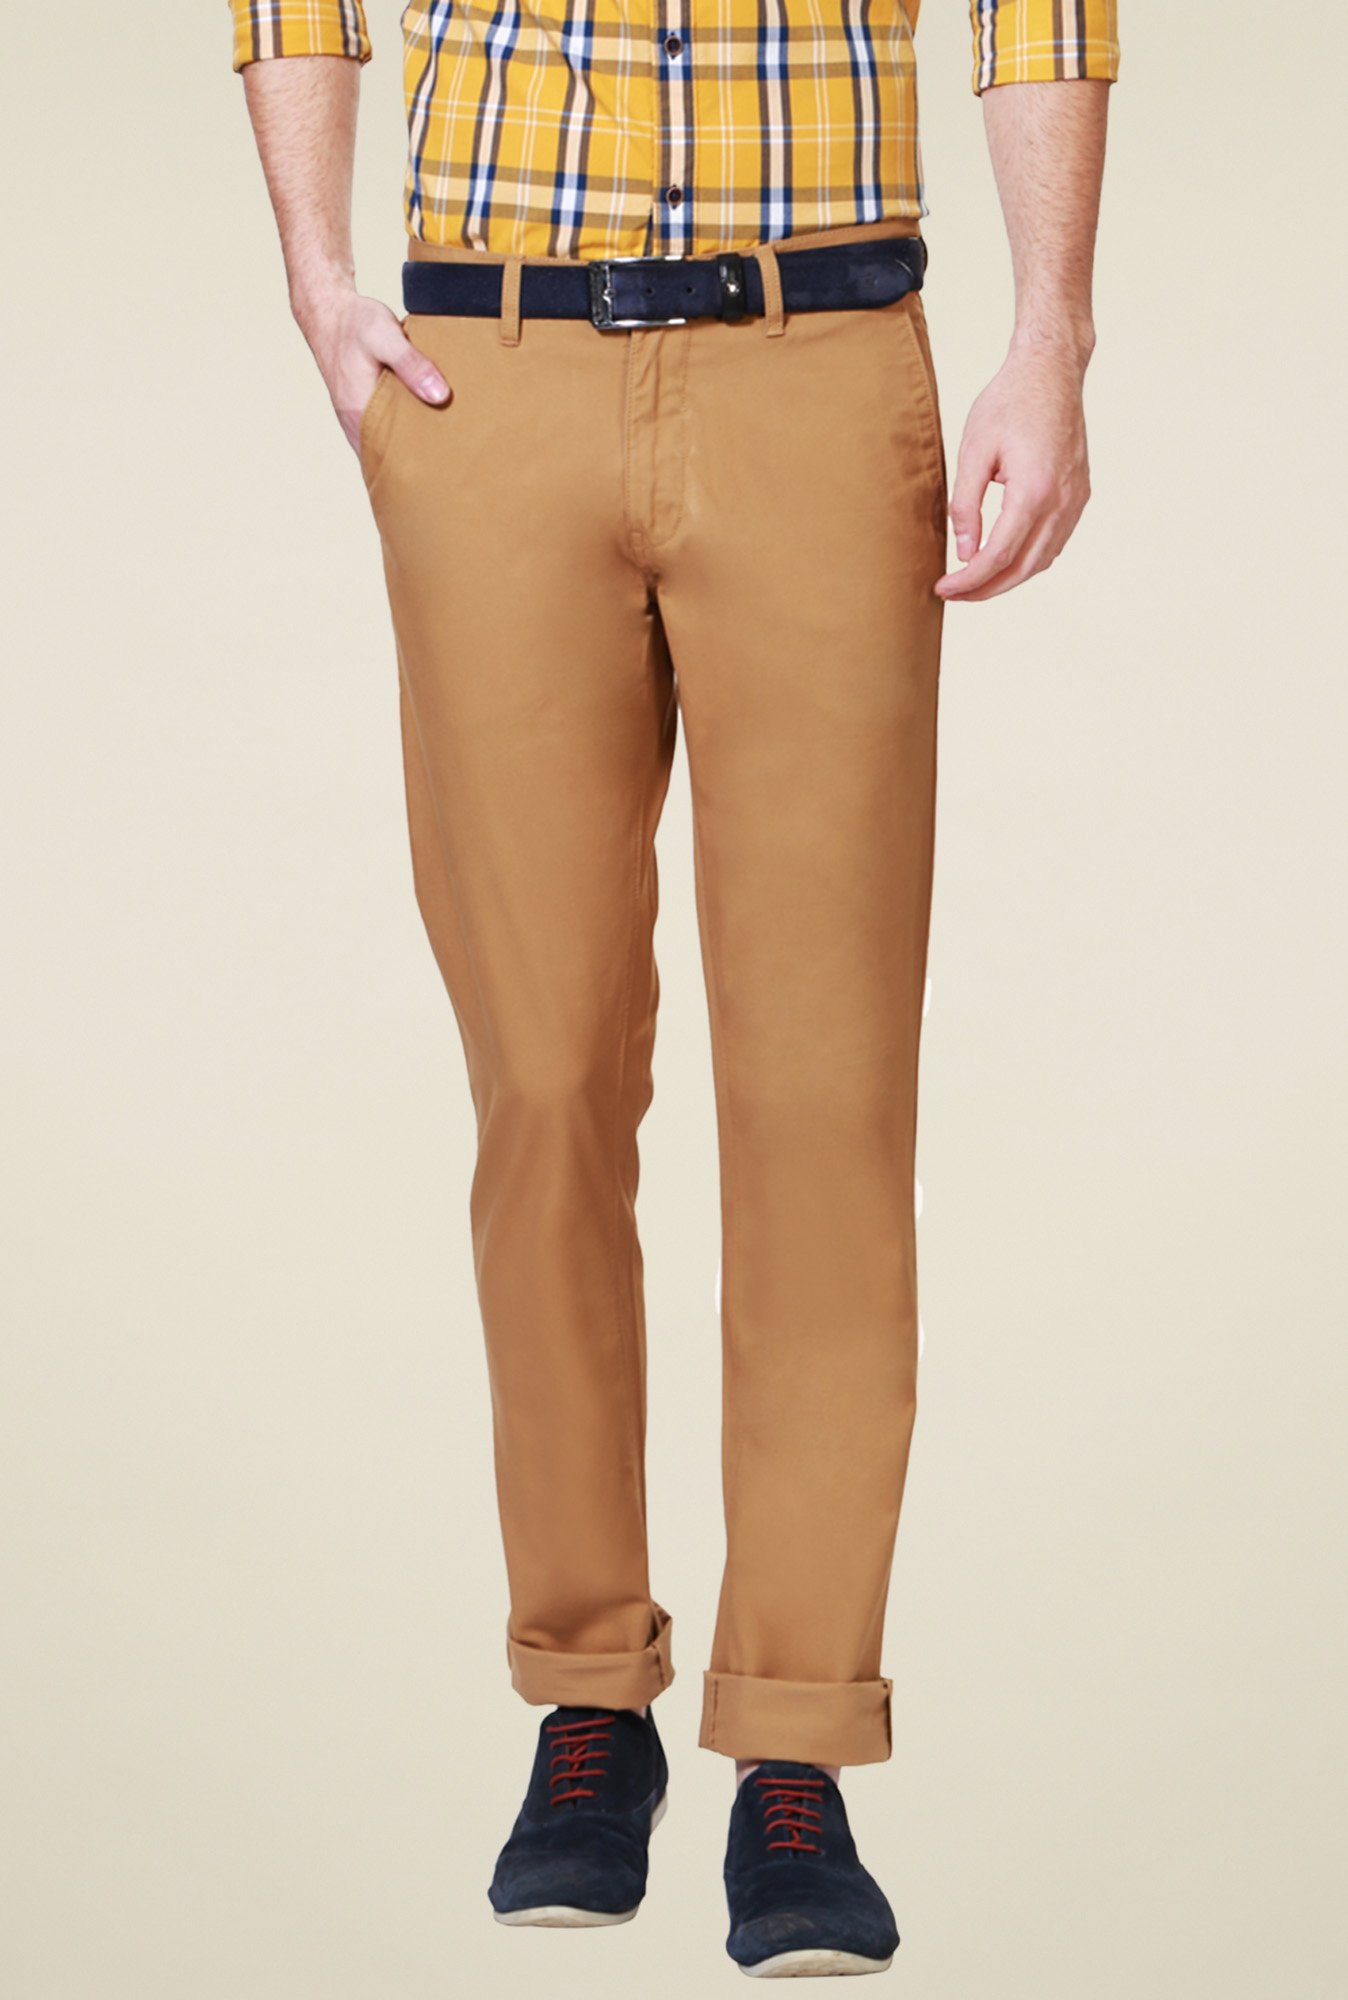 Allen Solly Tan Mid Rise Trousers